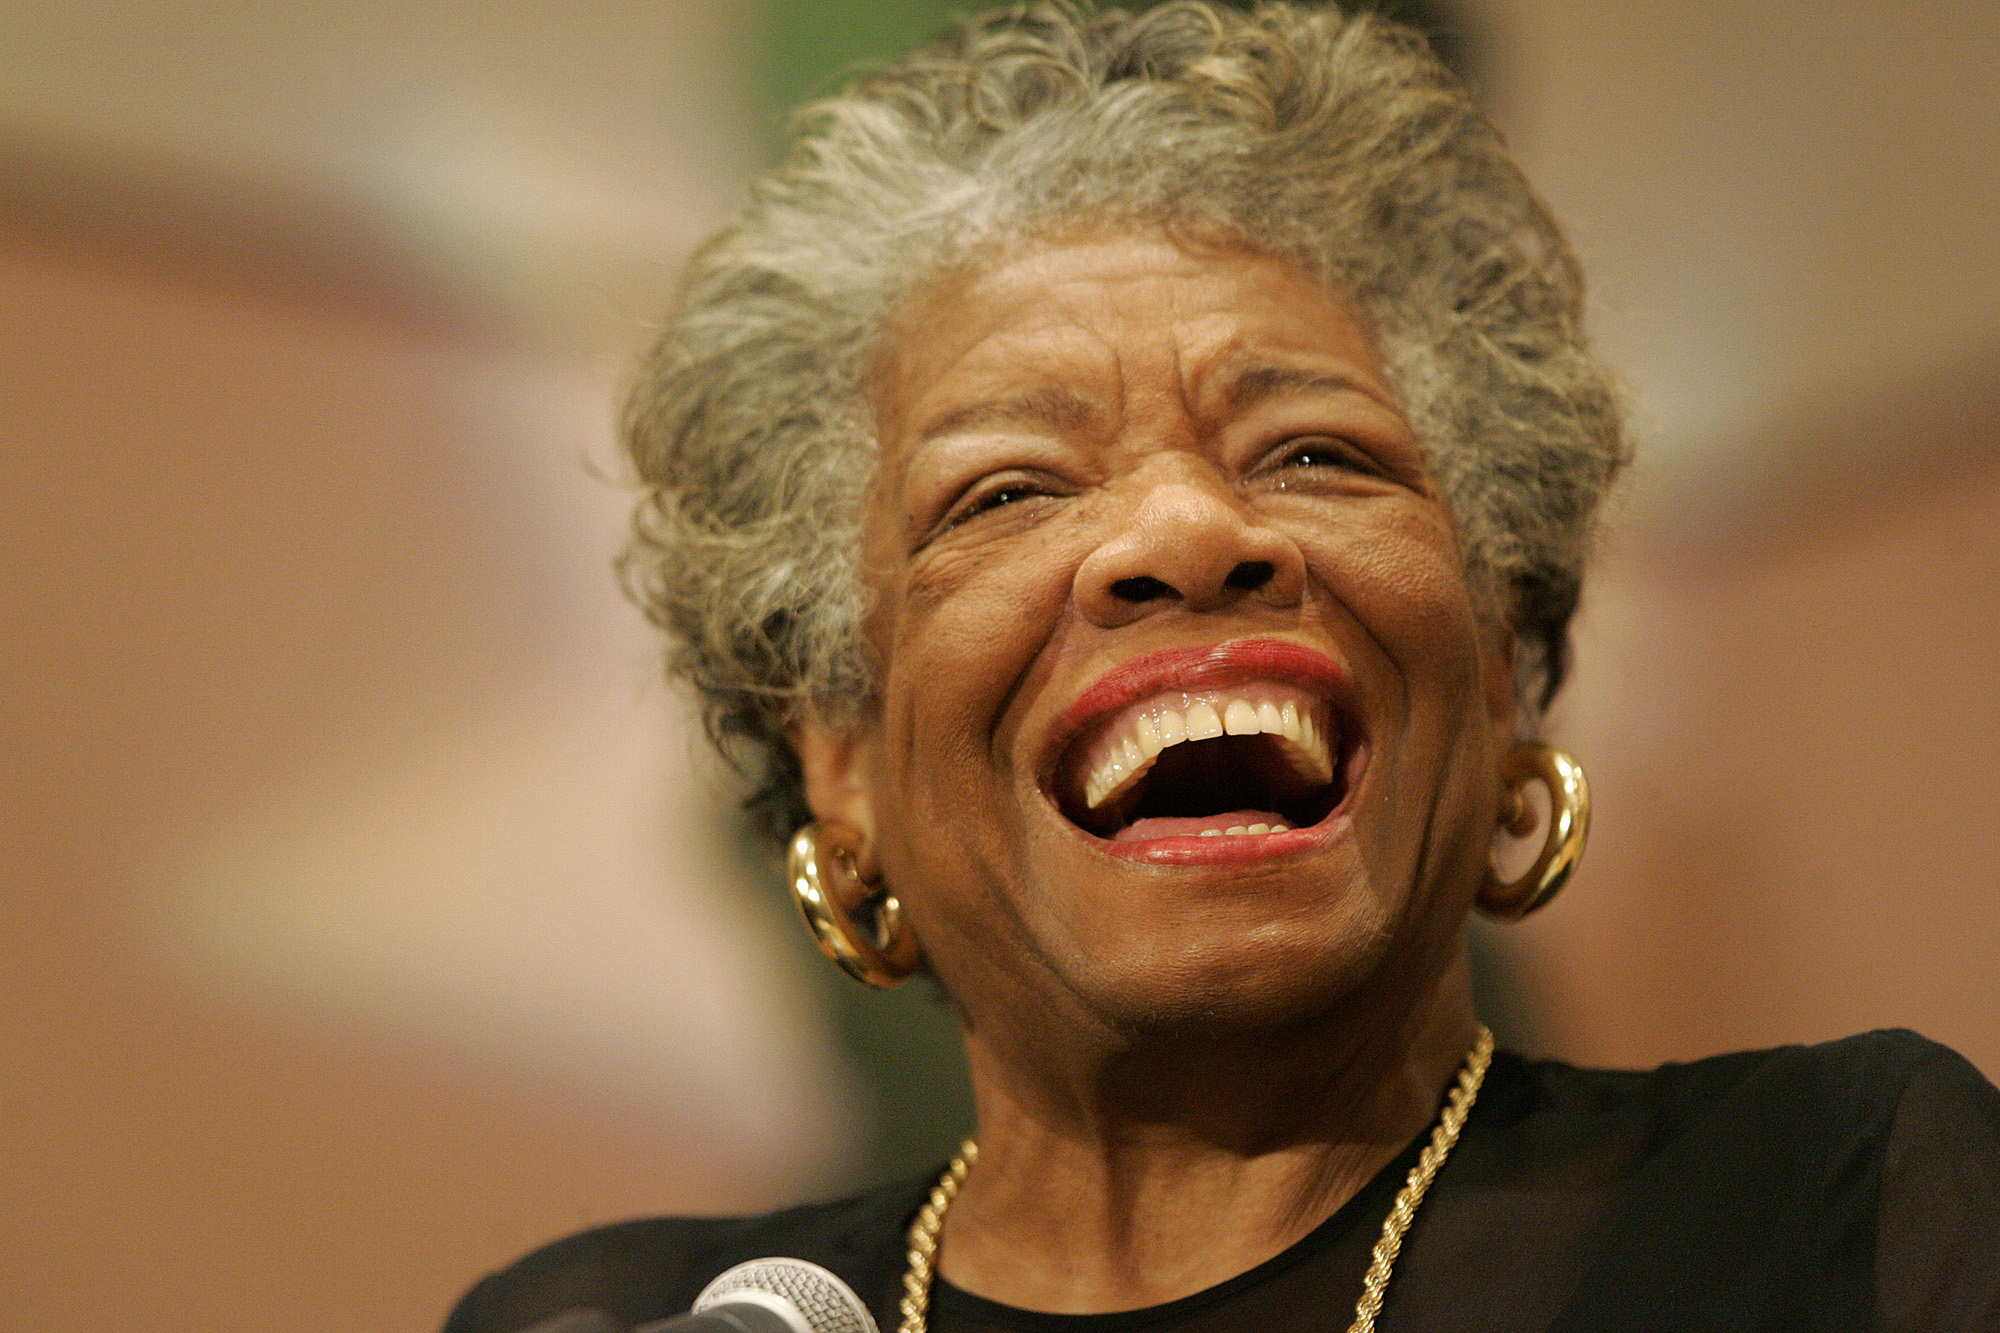 critic reviews of maya angelou Woman work - maya angelou (poet's life) by the time maya angelou wrote woman work in 1978 angelou's use of rhyme in much of her poetry is one aspect critics tend to criticize because they believe it makes her poetry sound juvenile.